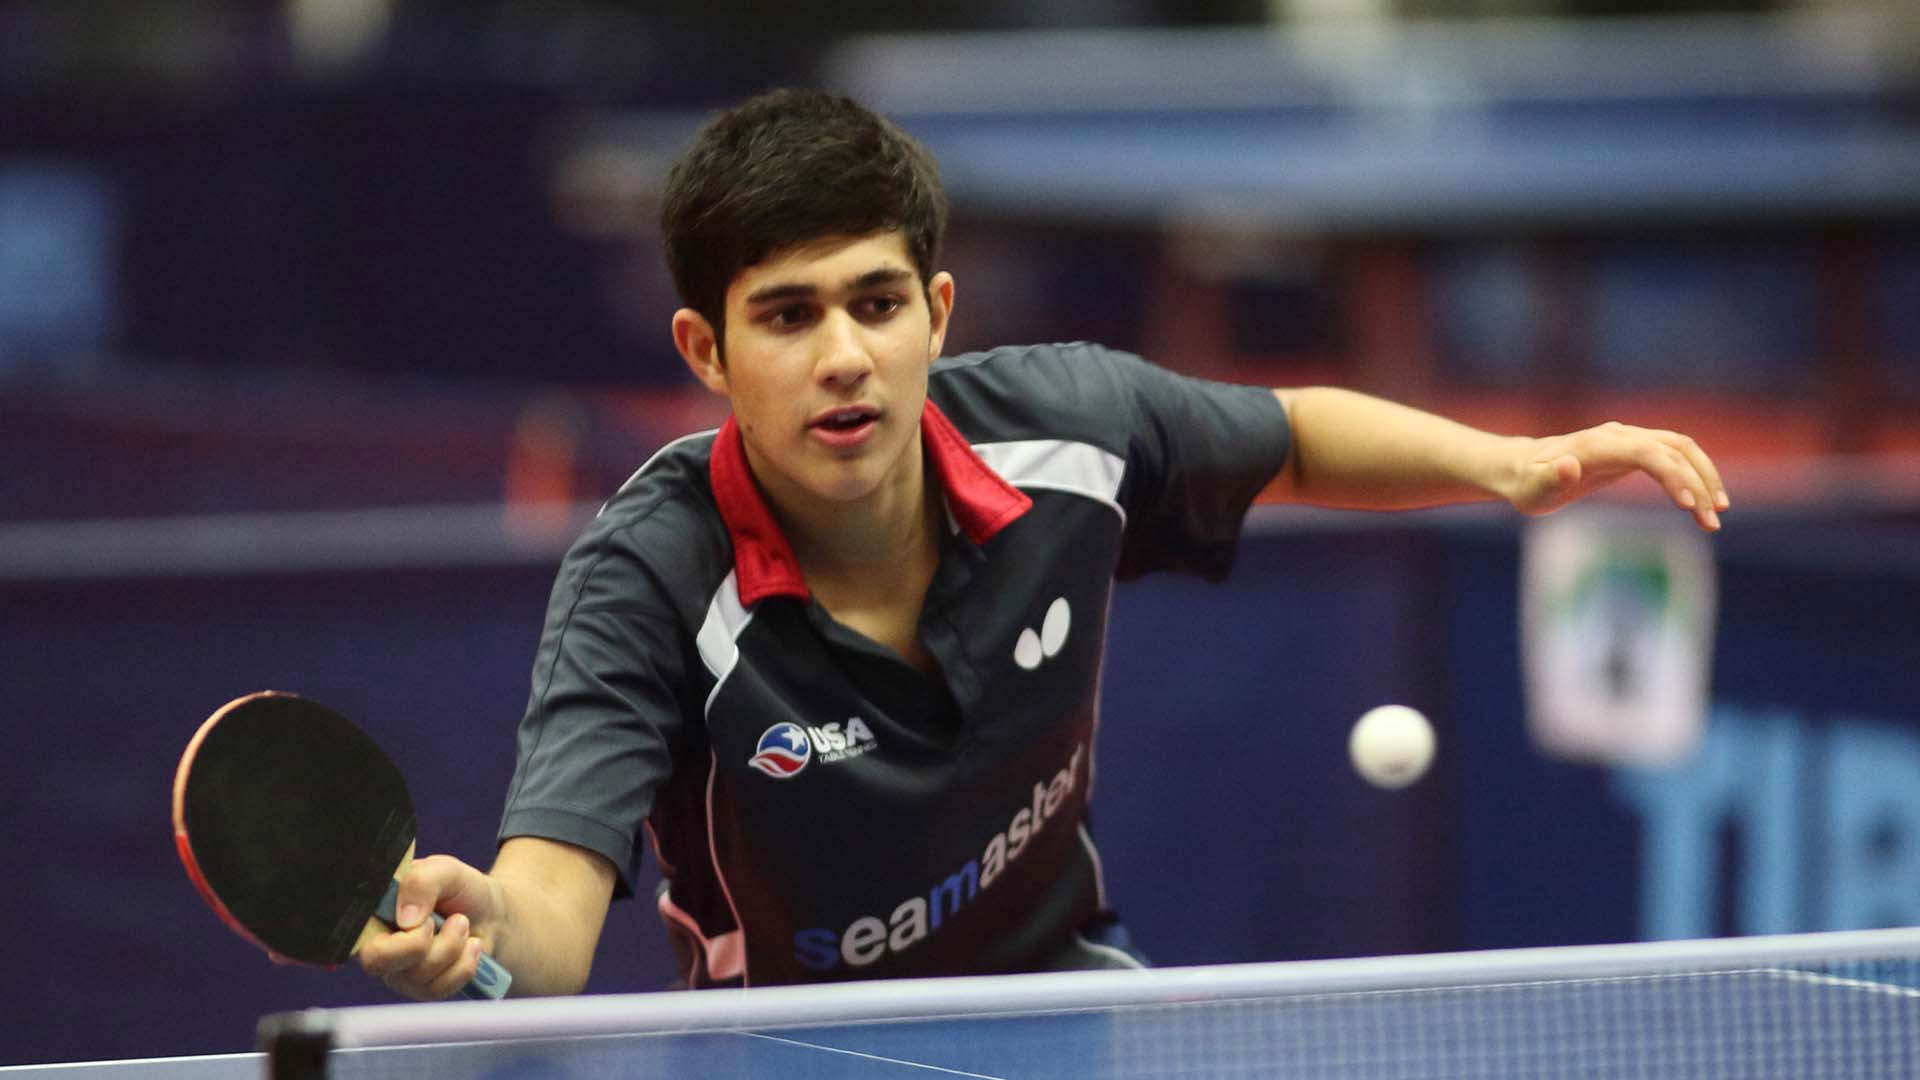 The Next Tango in Paris: ITTF Names Invitees to the 2018 World Cup